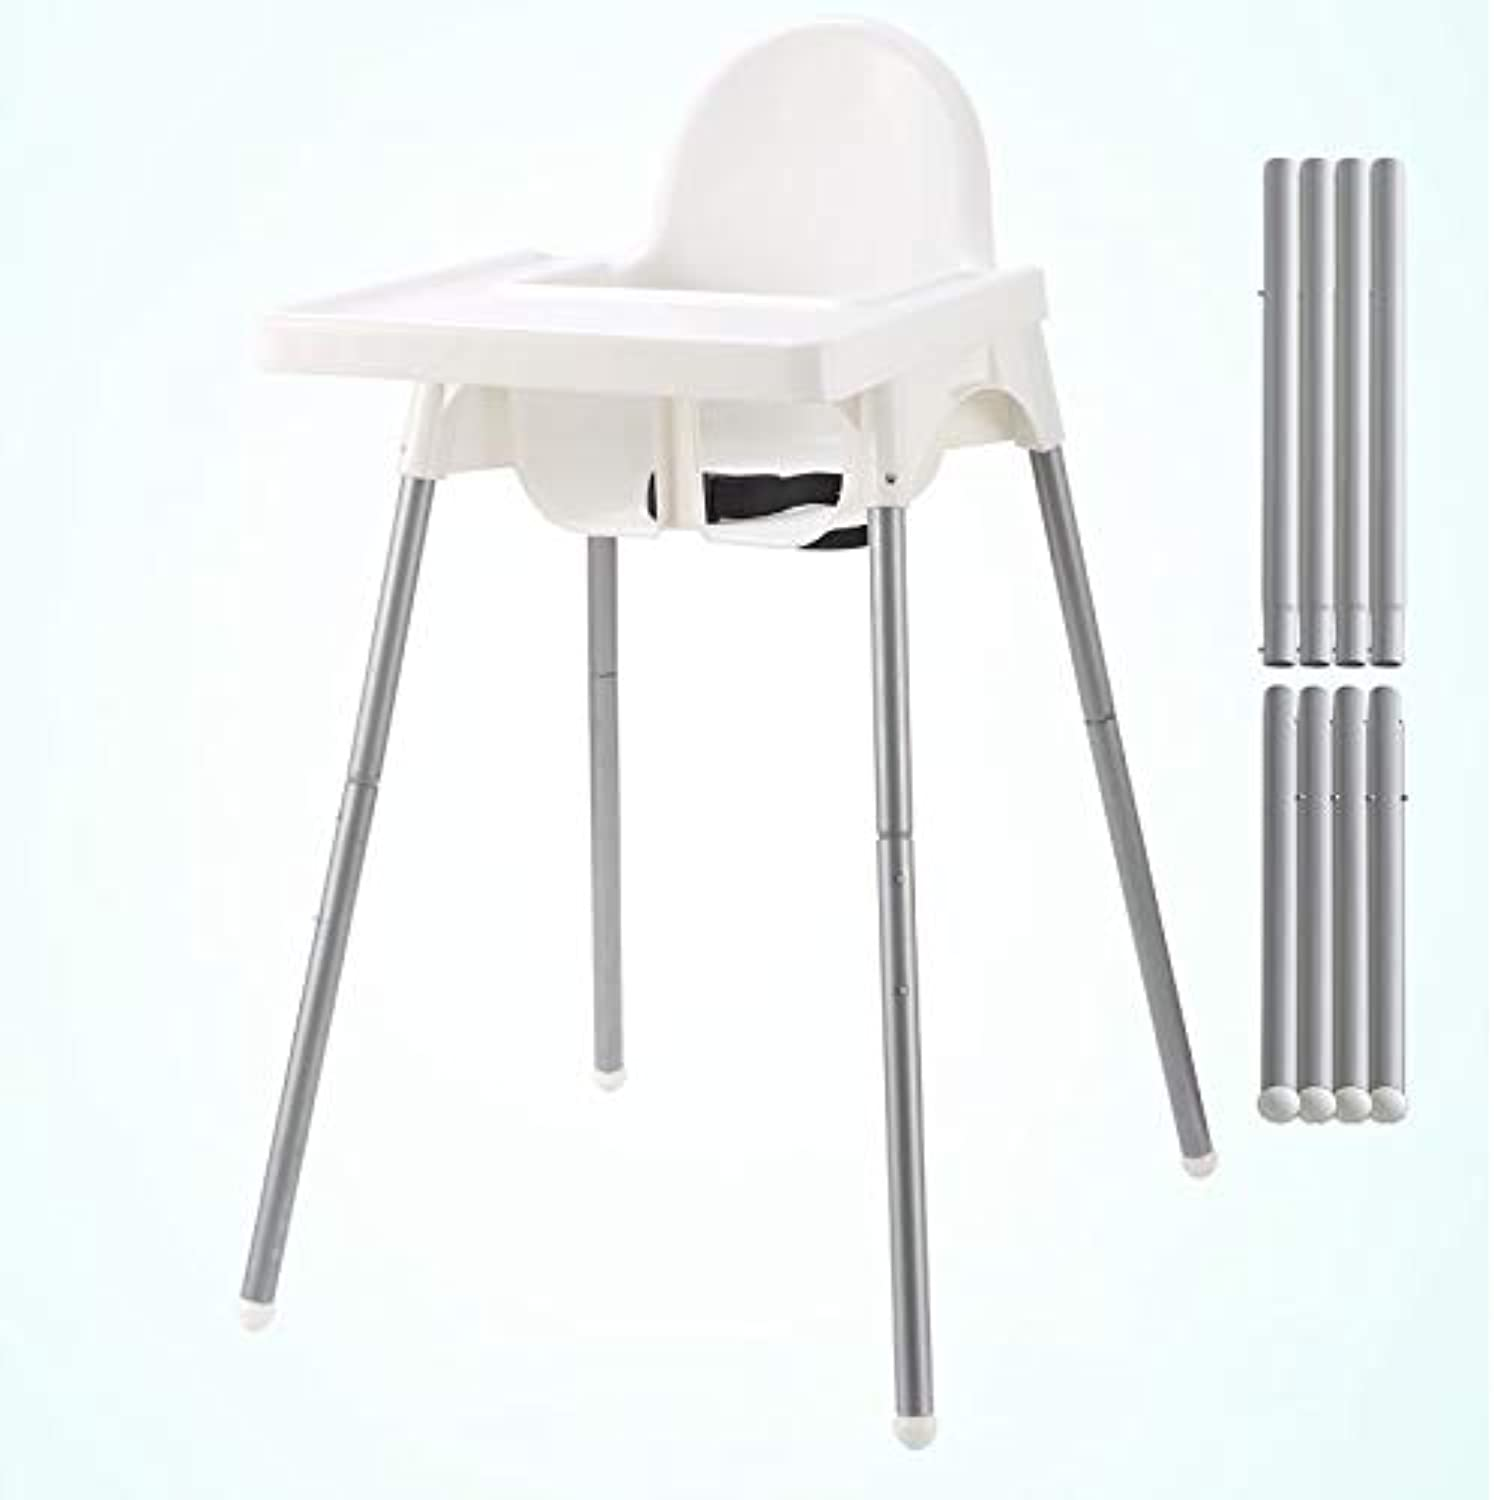 High Chair Adjustable Height Adjustable Portable Easy to Clean Light Quality Suitable for Baby Dining Chair